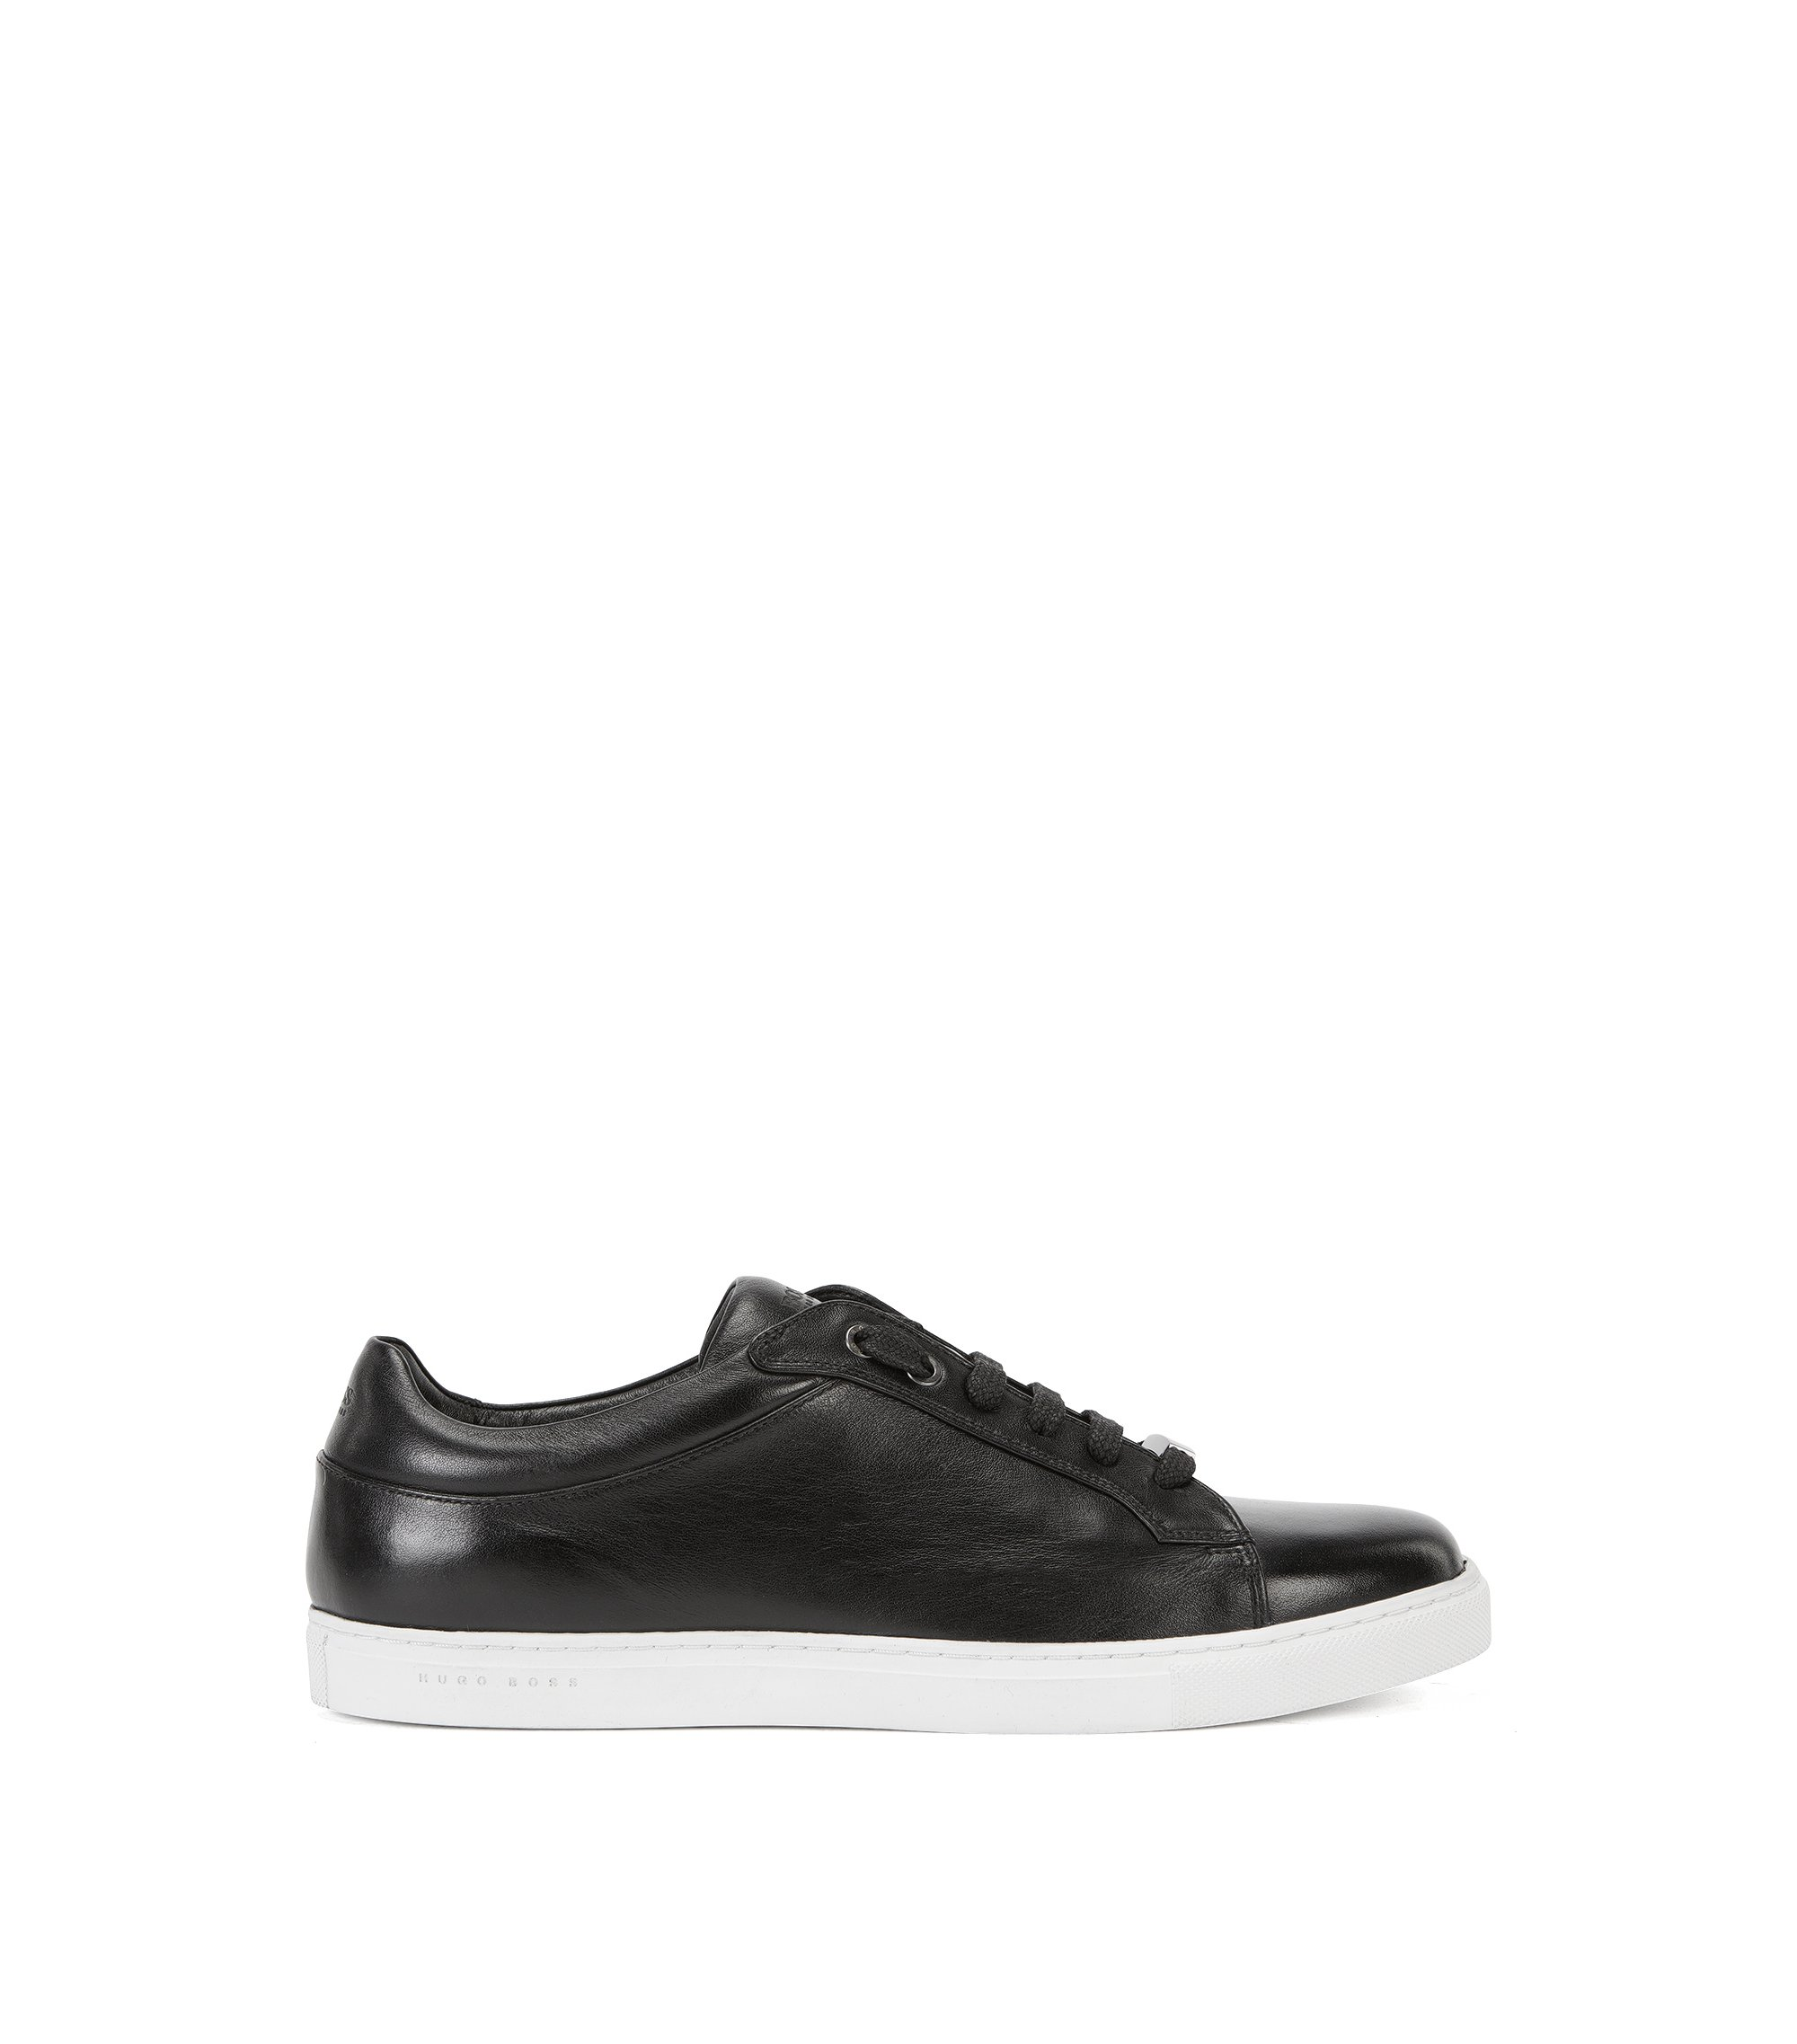 Leather lace-up trainers with branded sole, Black